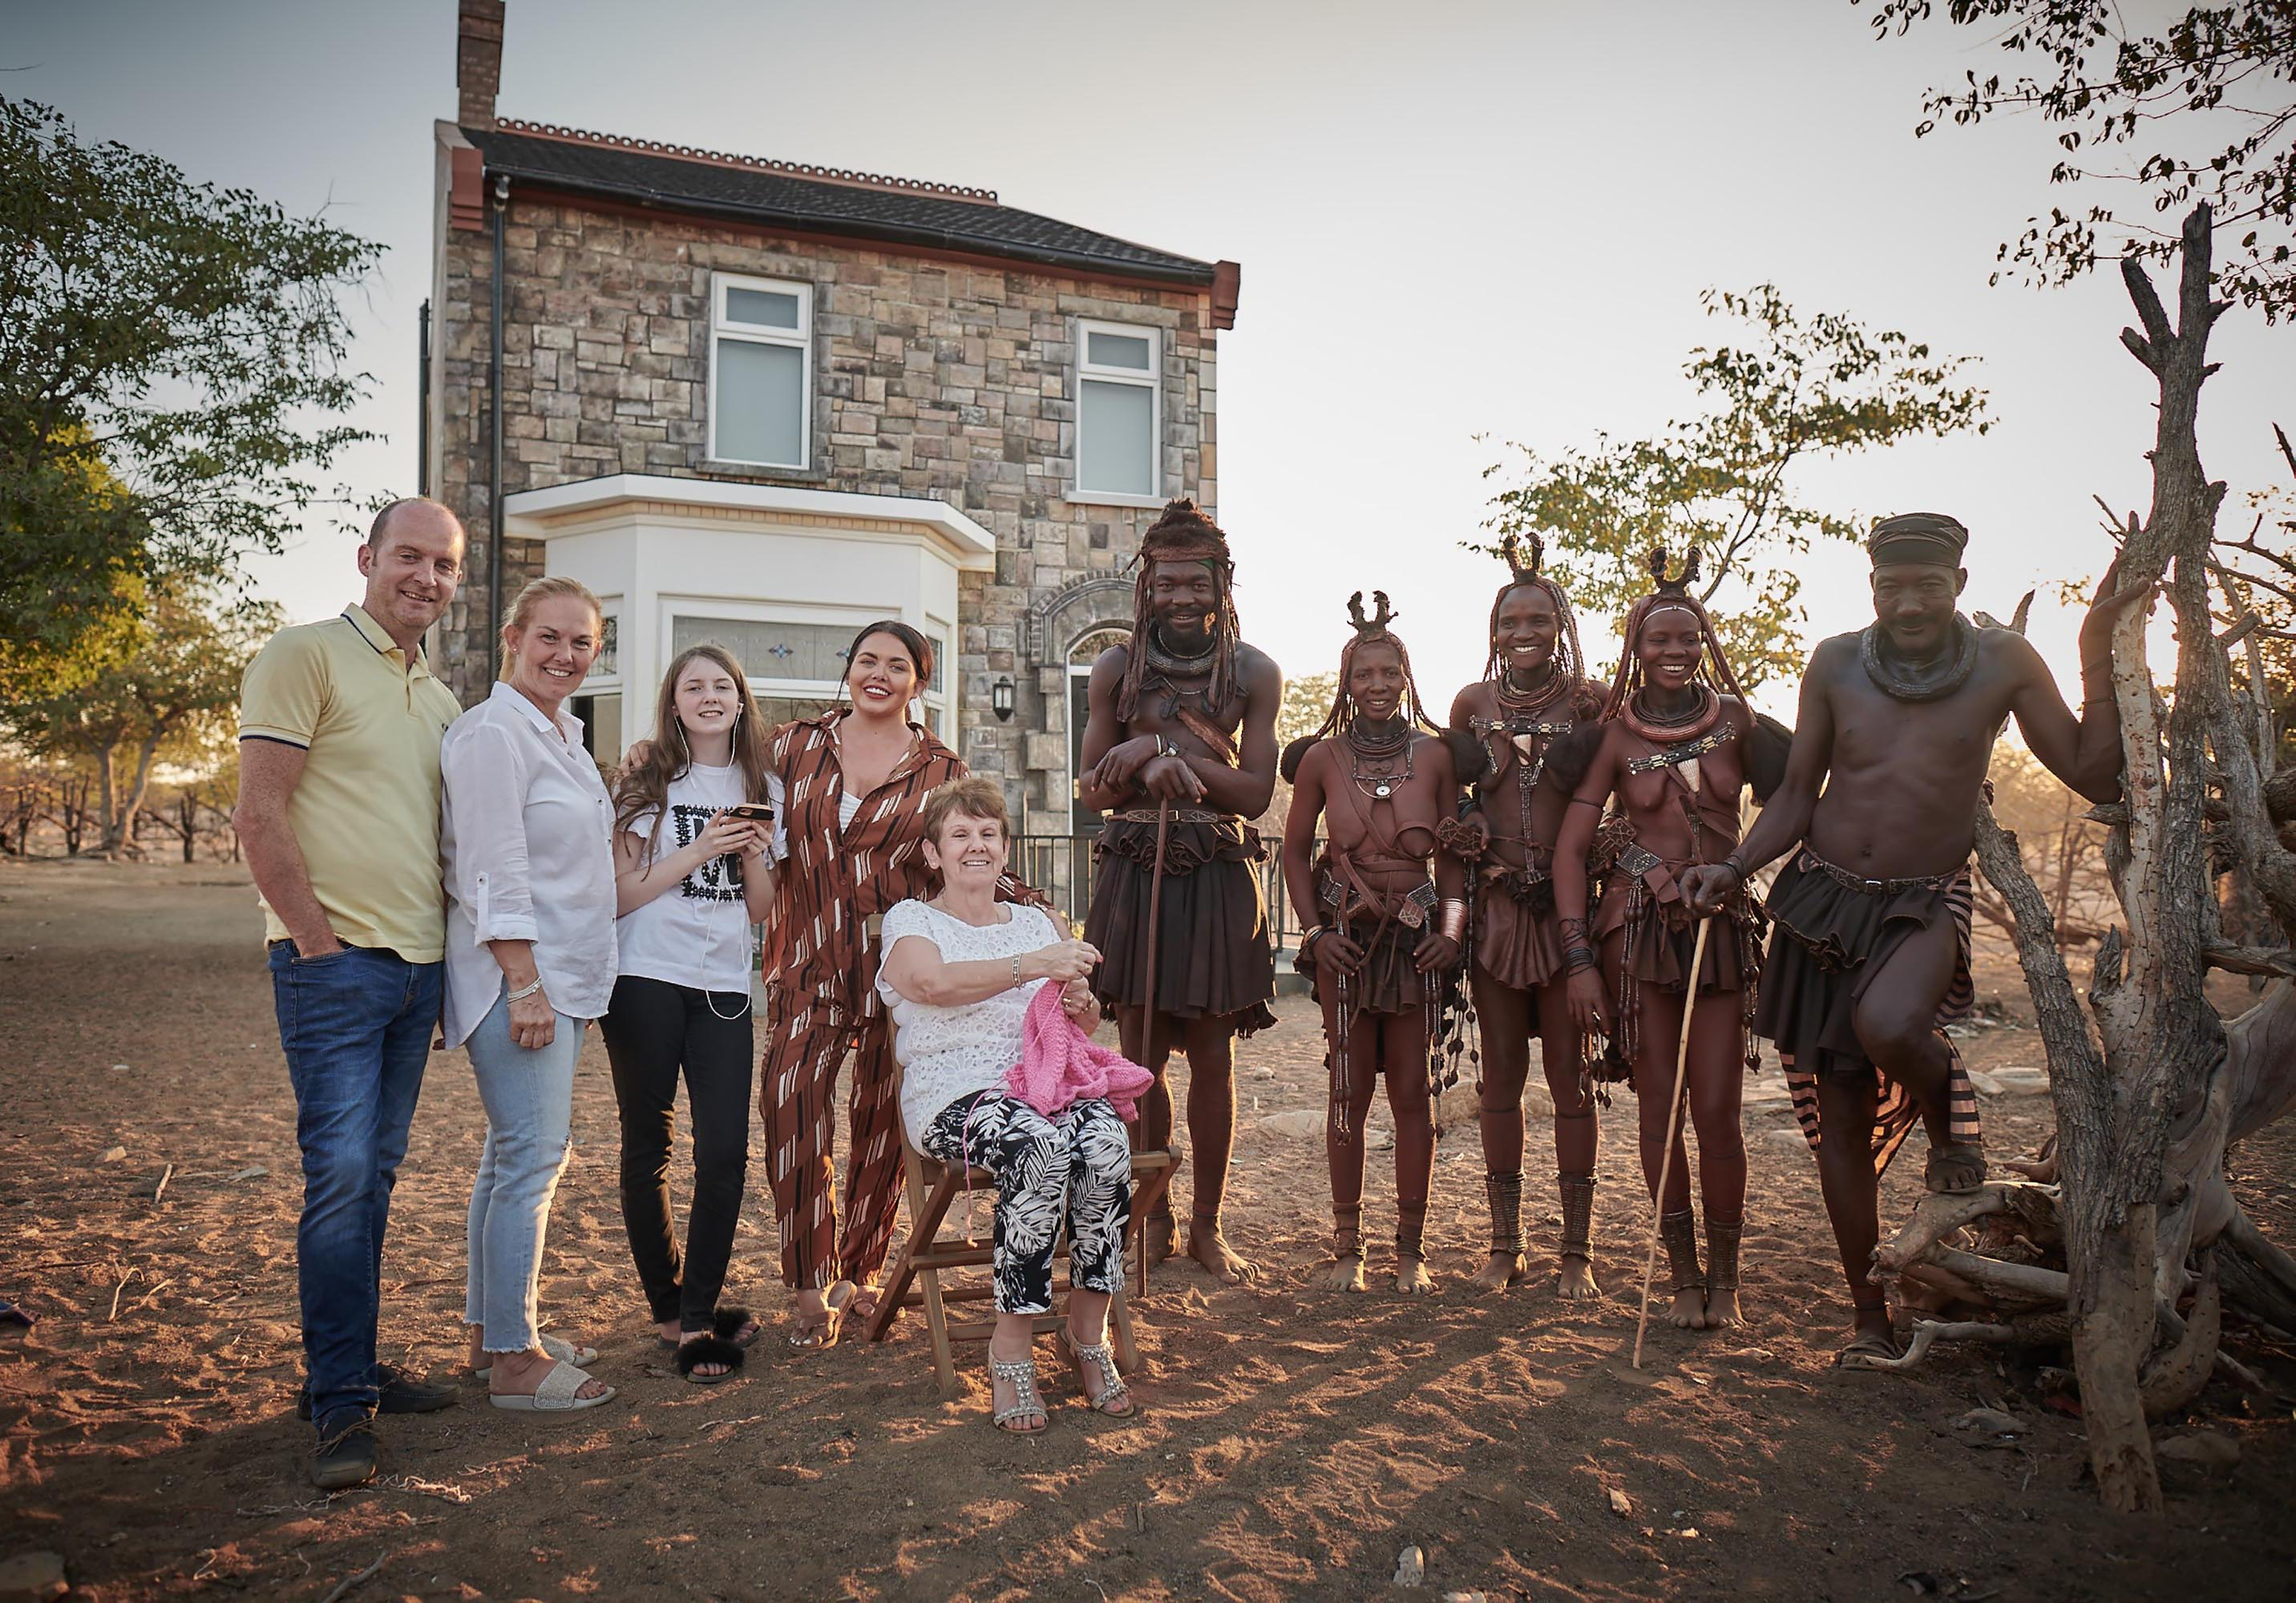 Scarlett Moffatt and family with Mboki, Muvii, Ueripanga, Kaitaarua and Kandisiko in front of their home-from-home in Namibia